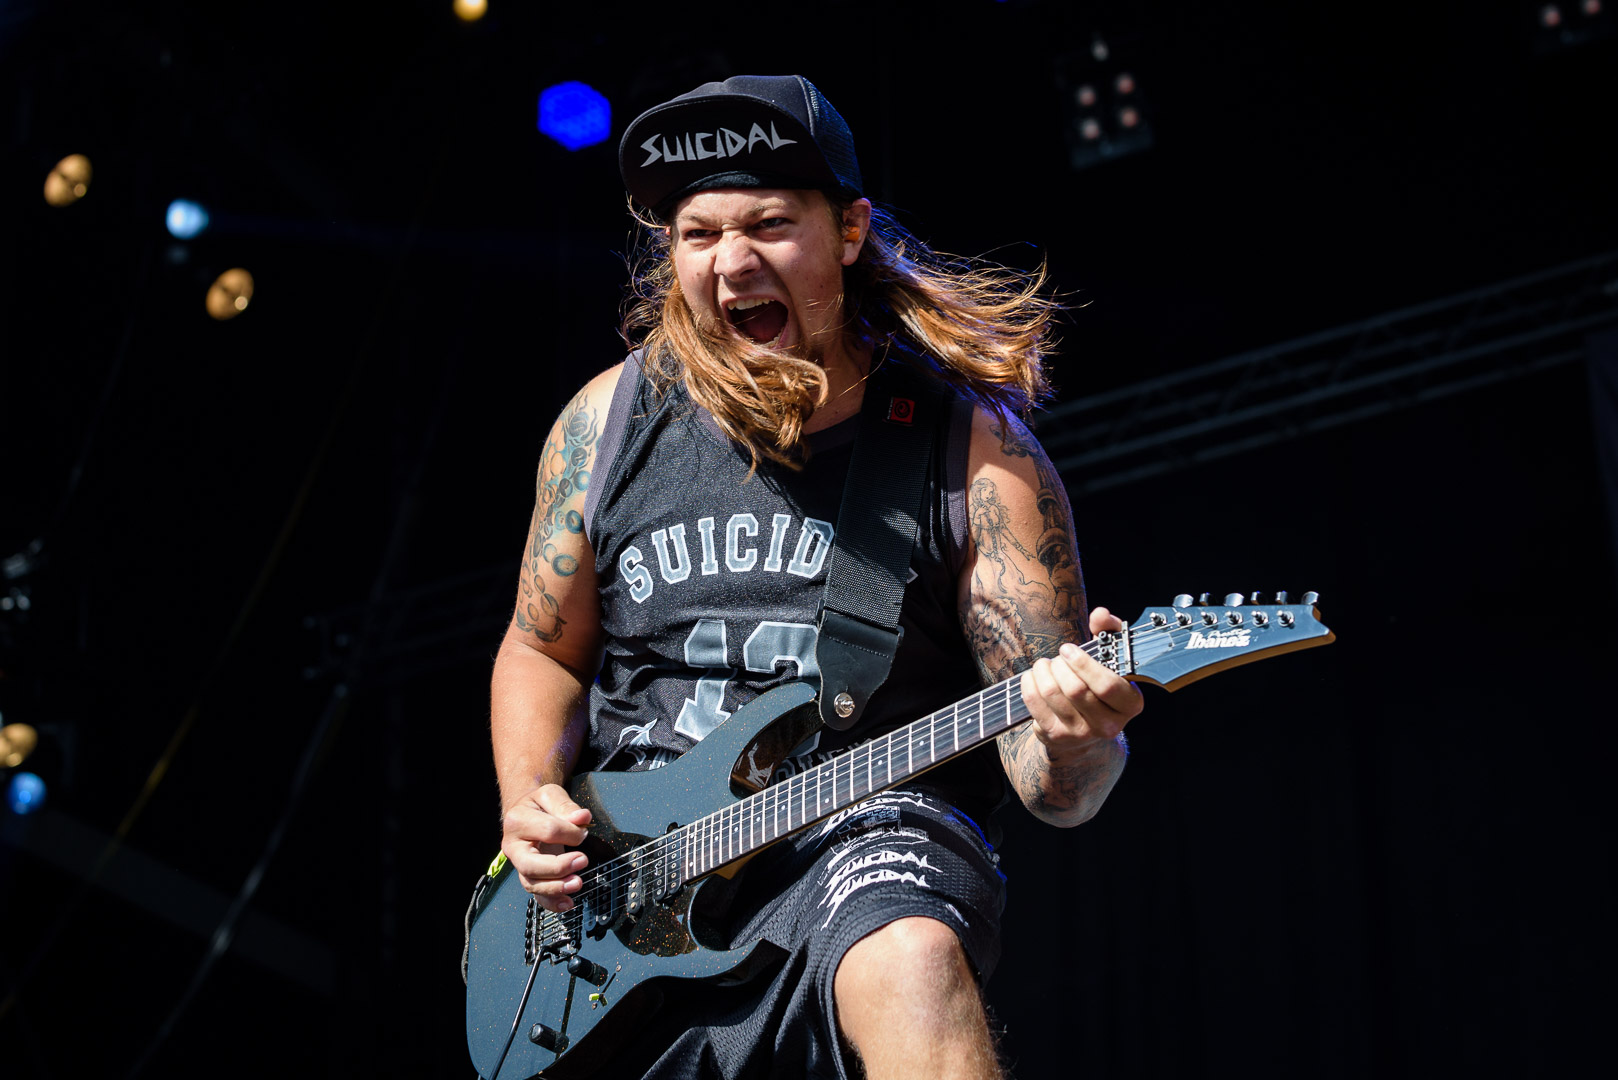 SUICIDAL TENDENCIES – Rockavaria 2016